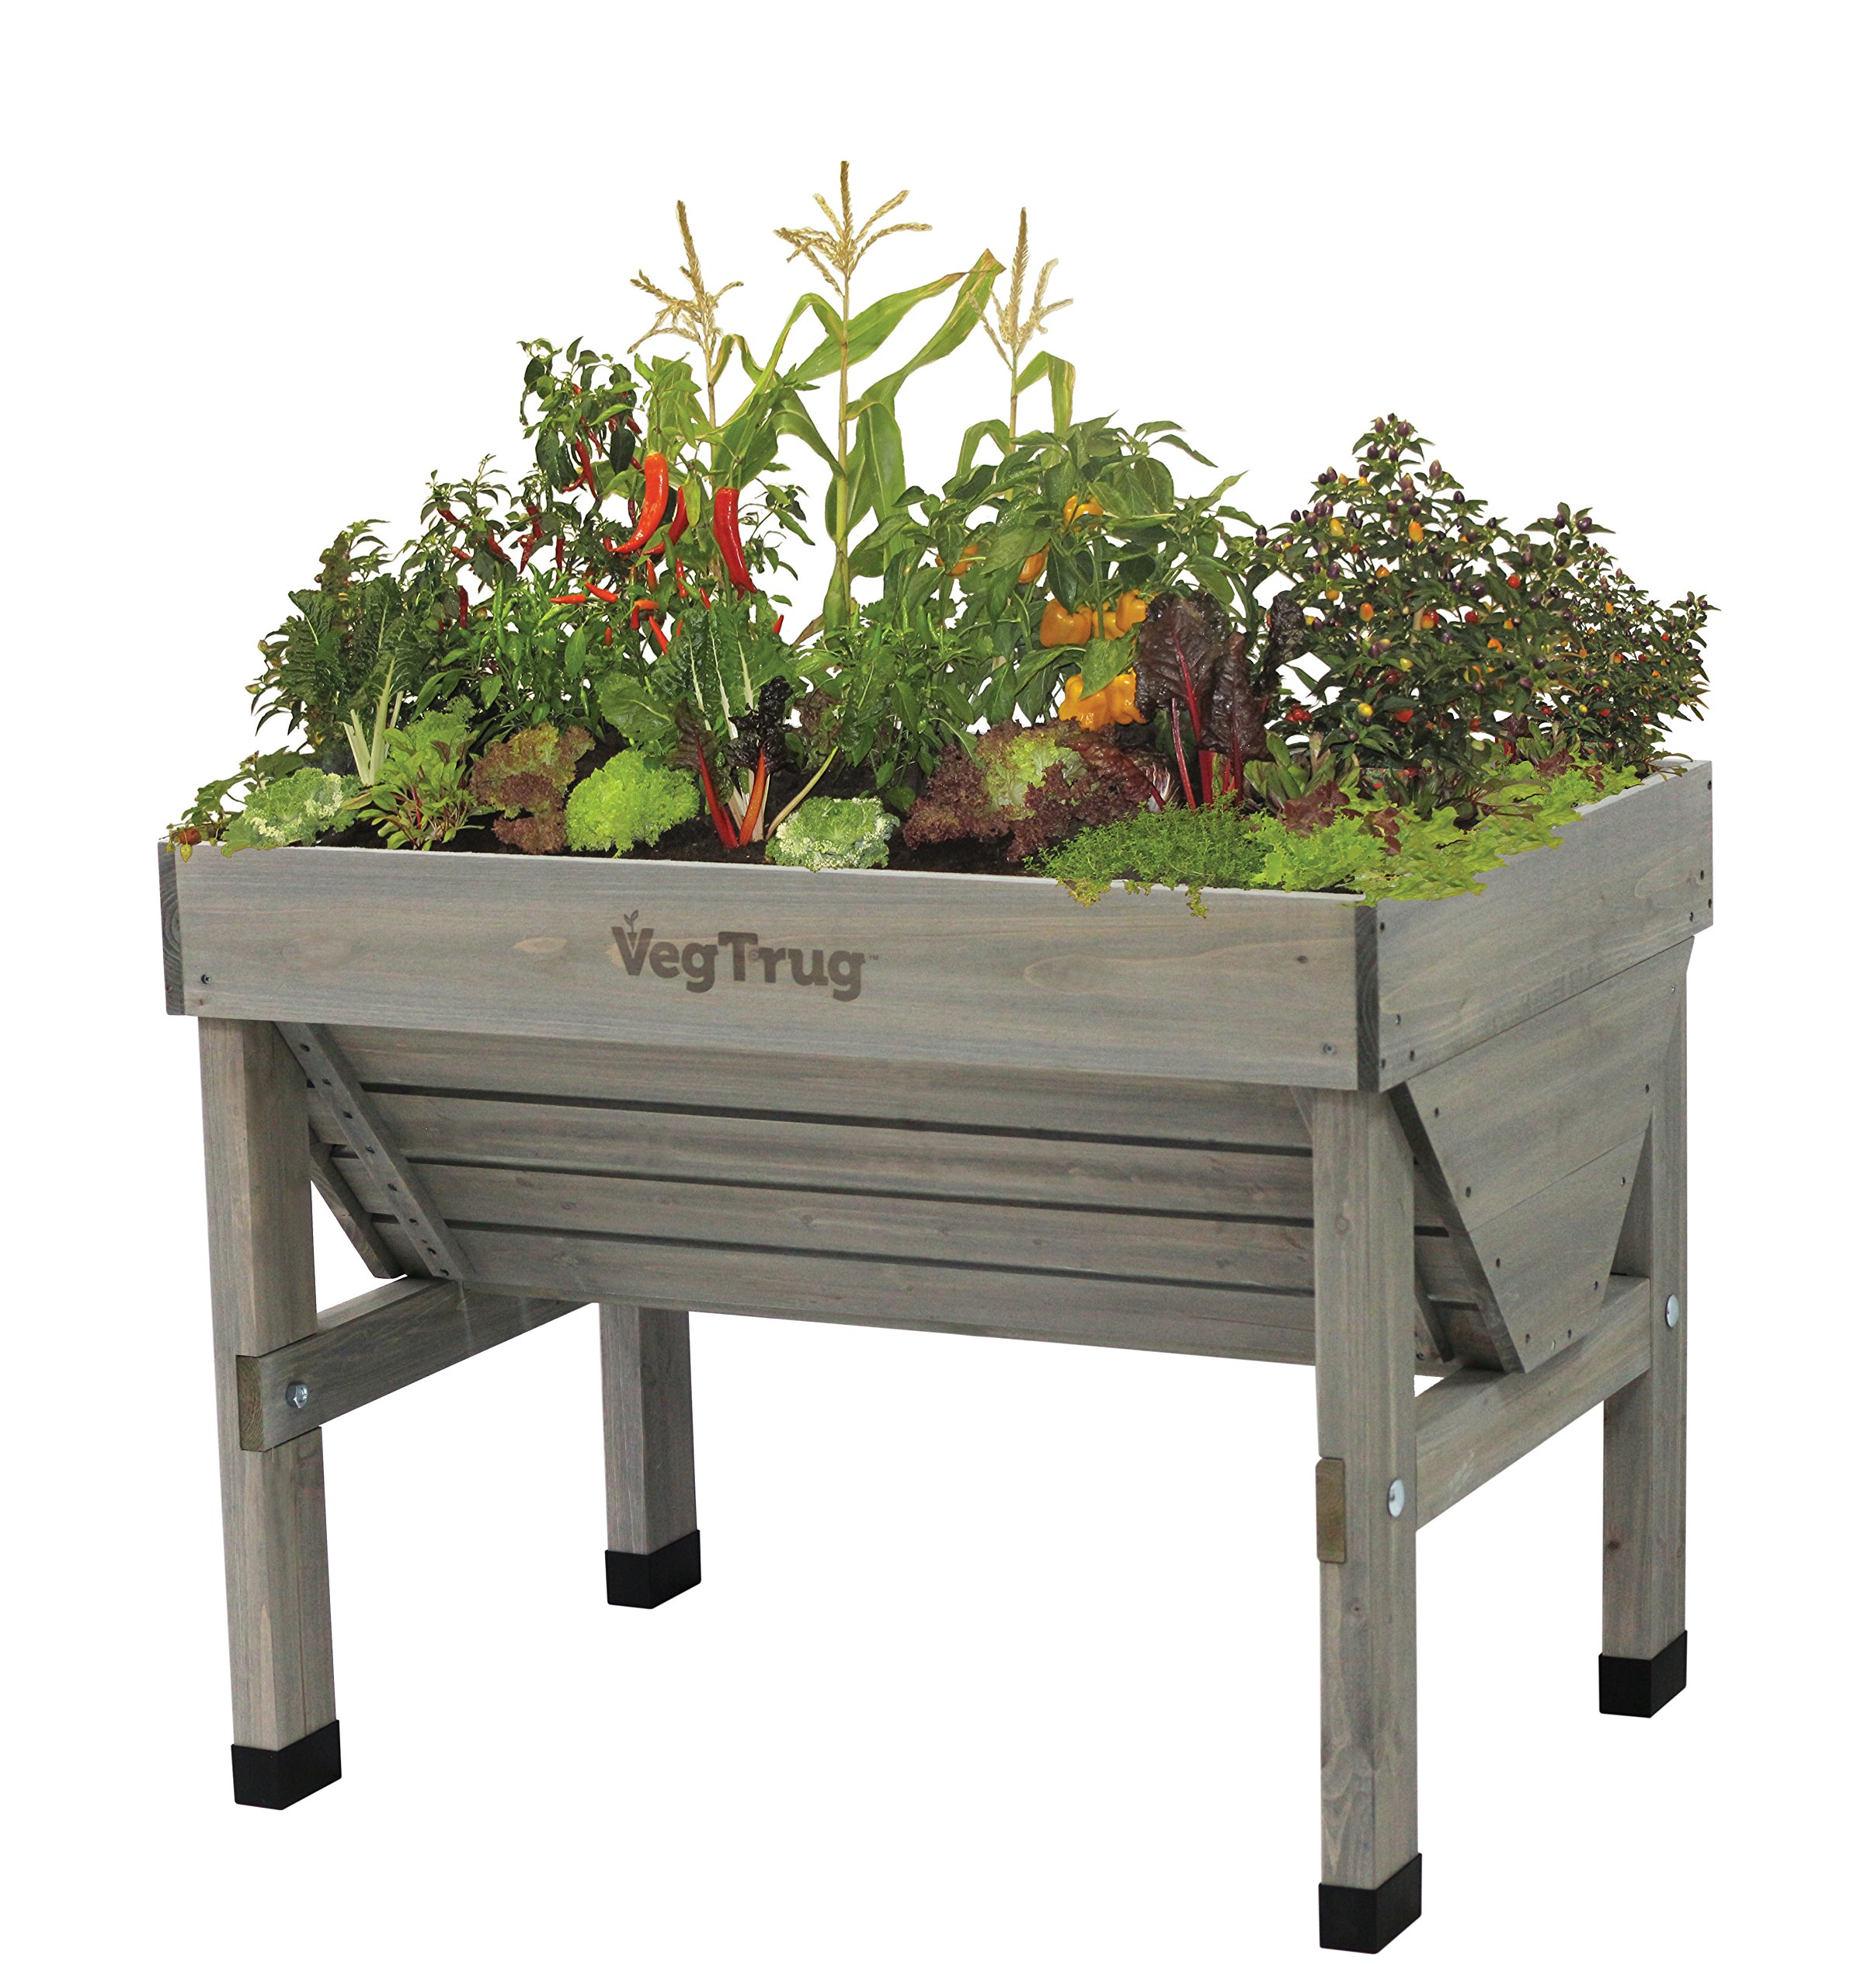 Vegtrug VTGWS 0391 USA Small Grey Wash Raised Bed Planter